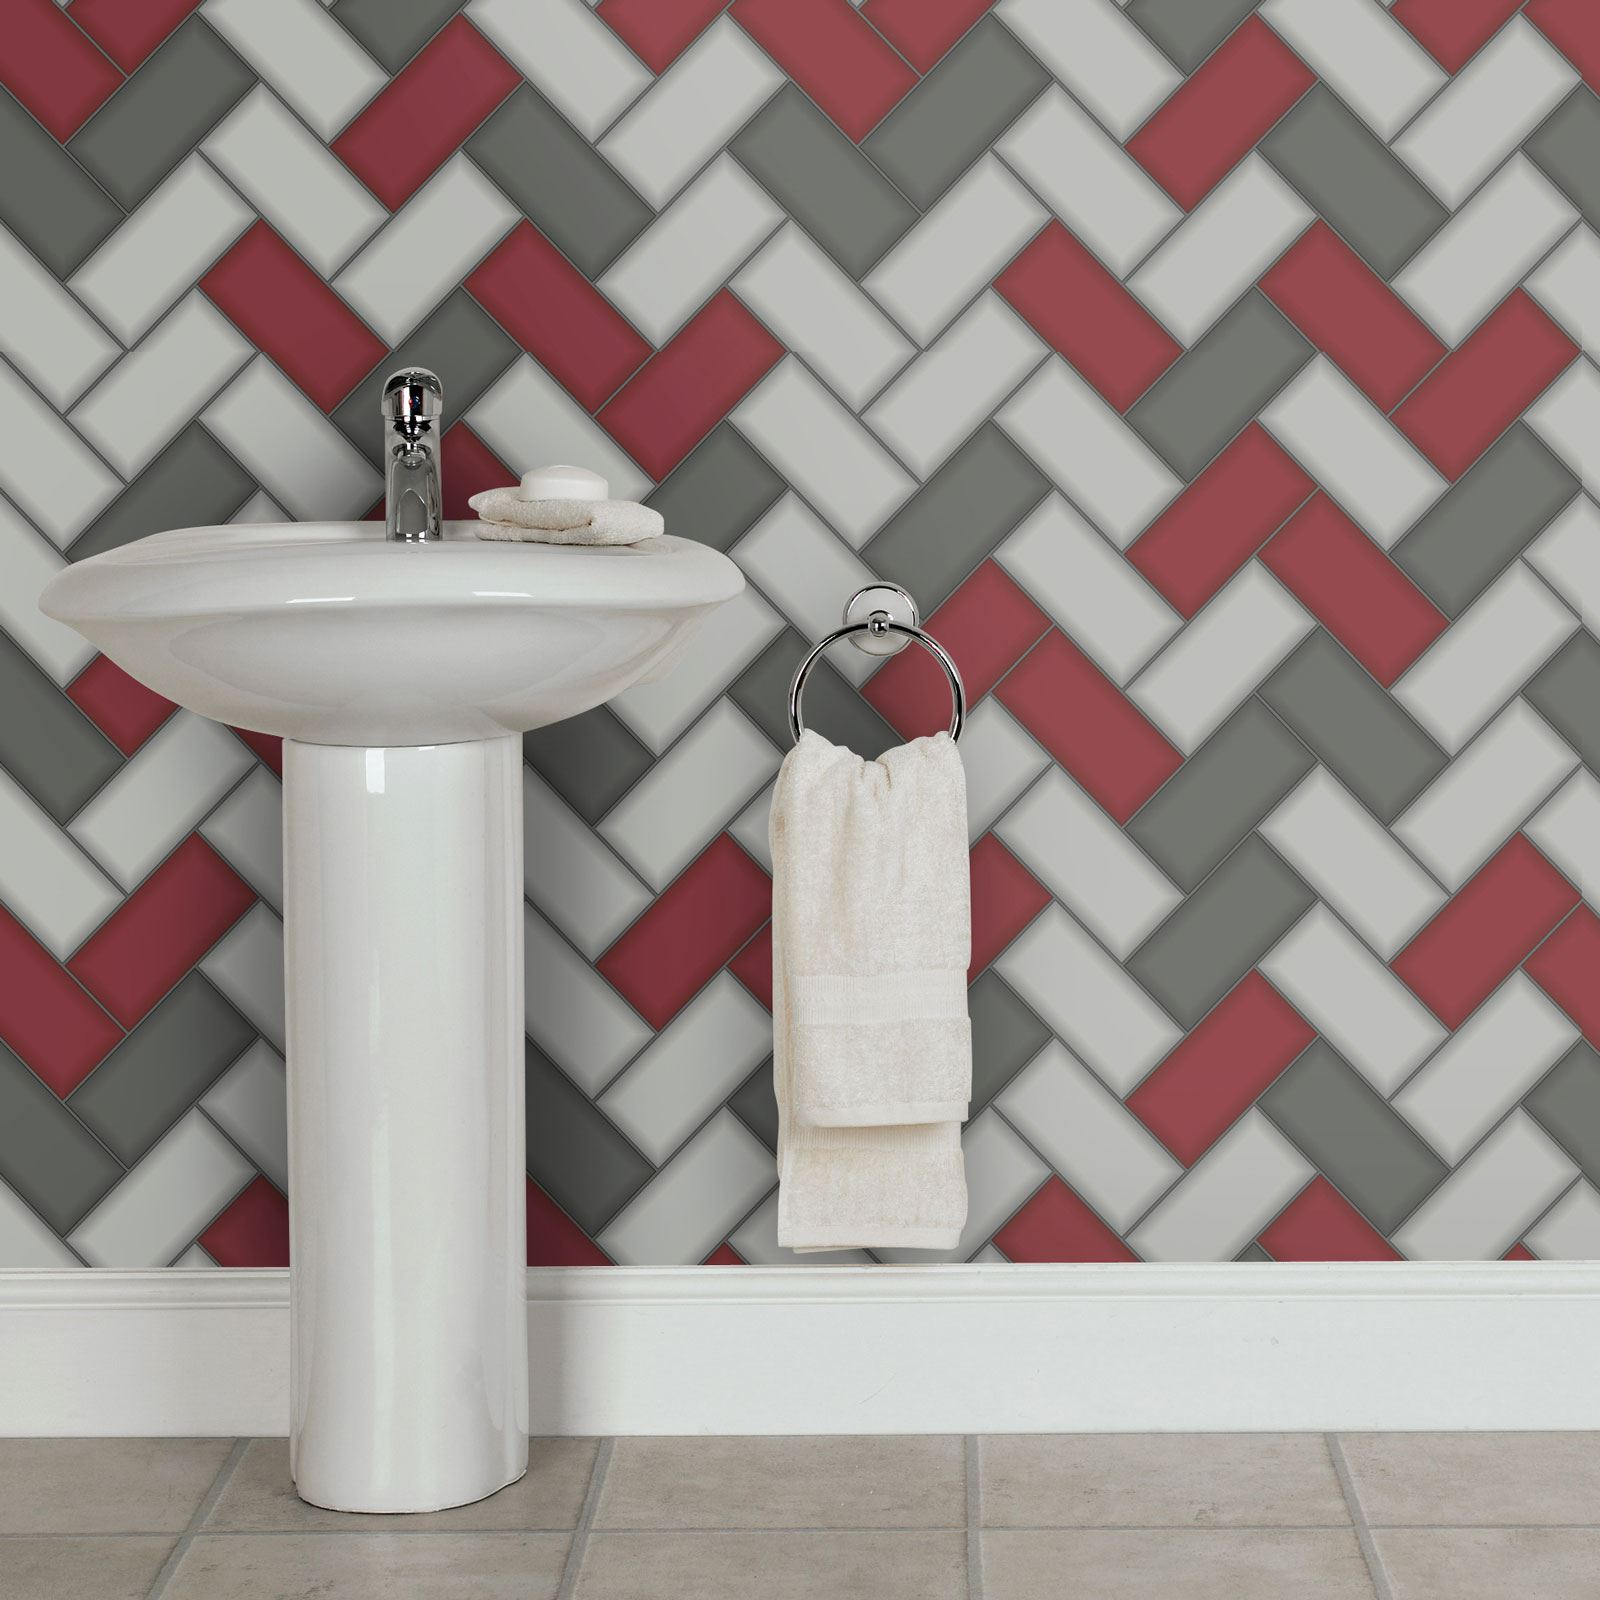 Textured Wallpaper For Bathrooms 2017: HOLDEN TILING ON A ROLL TILE GLITTER TEXTURED WALLPAPER